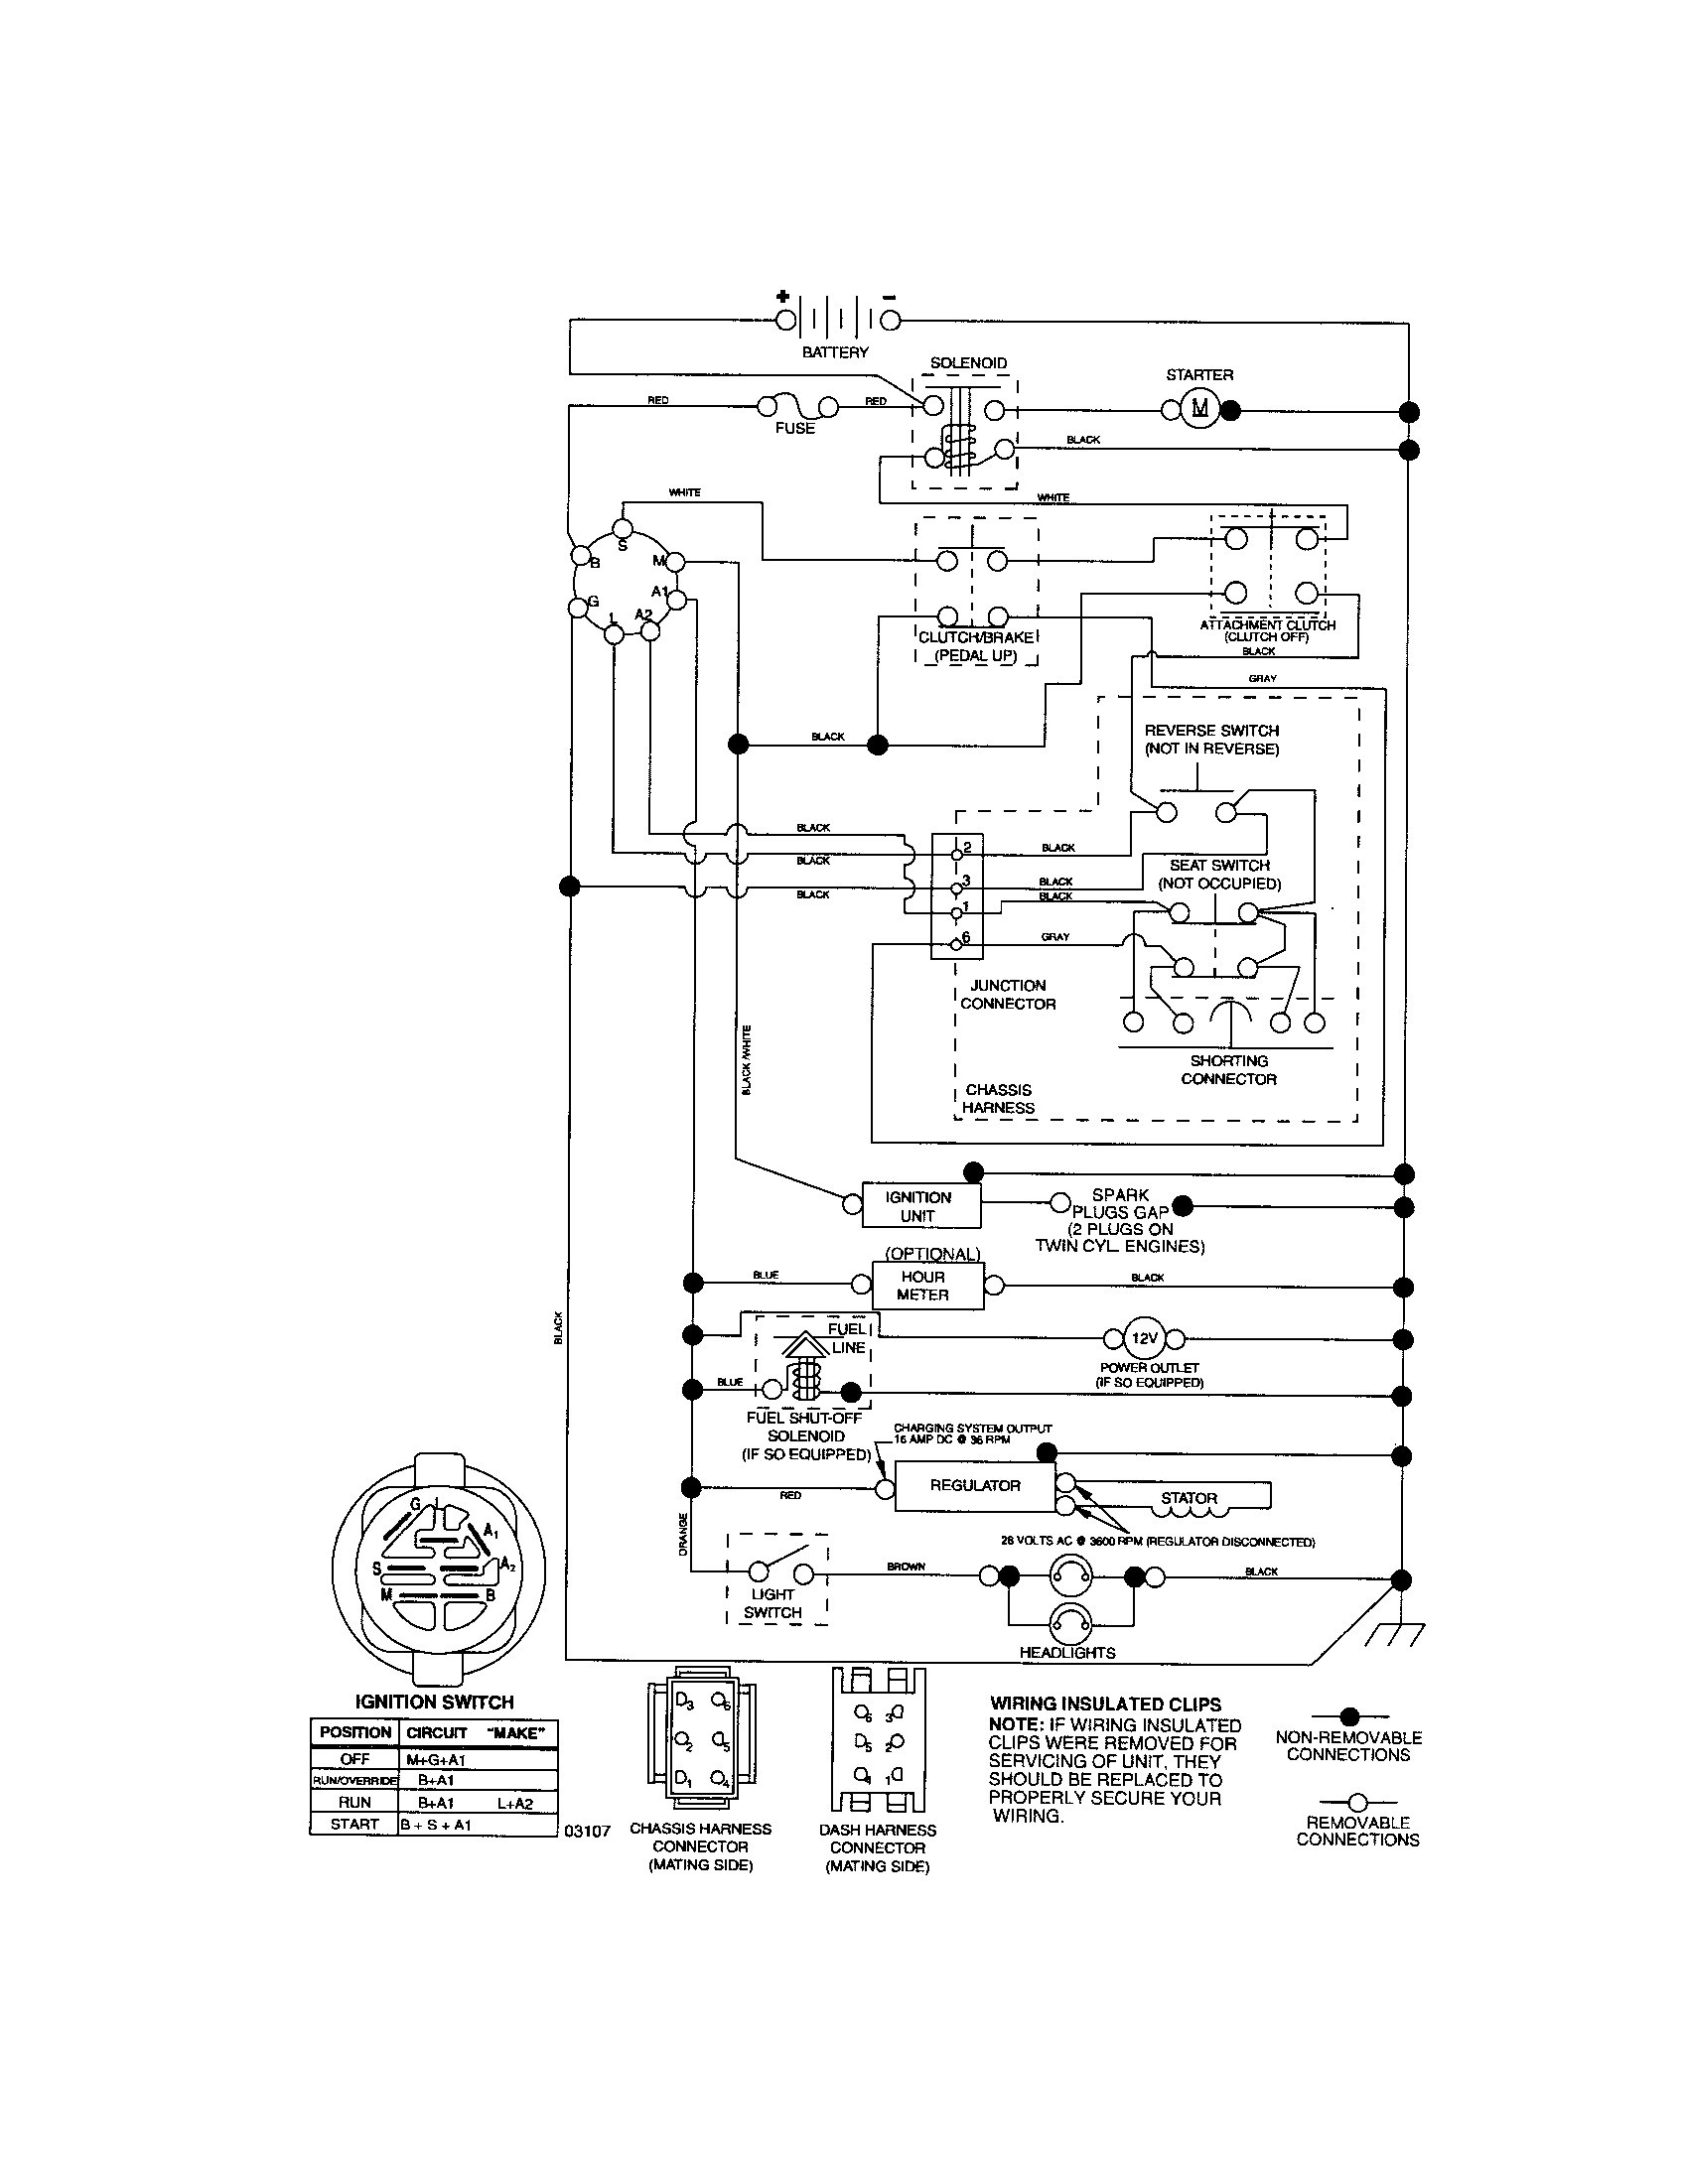 craftsman pto switch wiring diagram Download-Craftsman Riding Mower  Electrical Diagram Wiring And Lawn Ignition